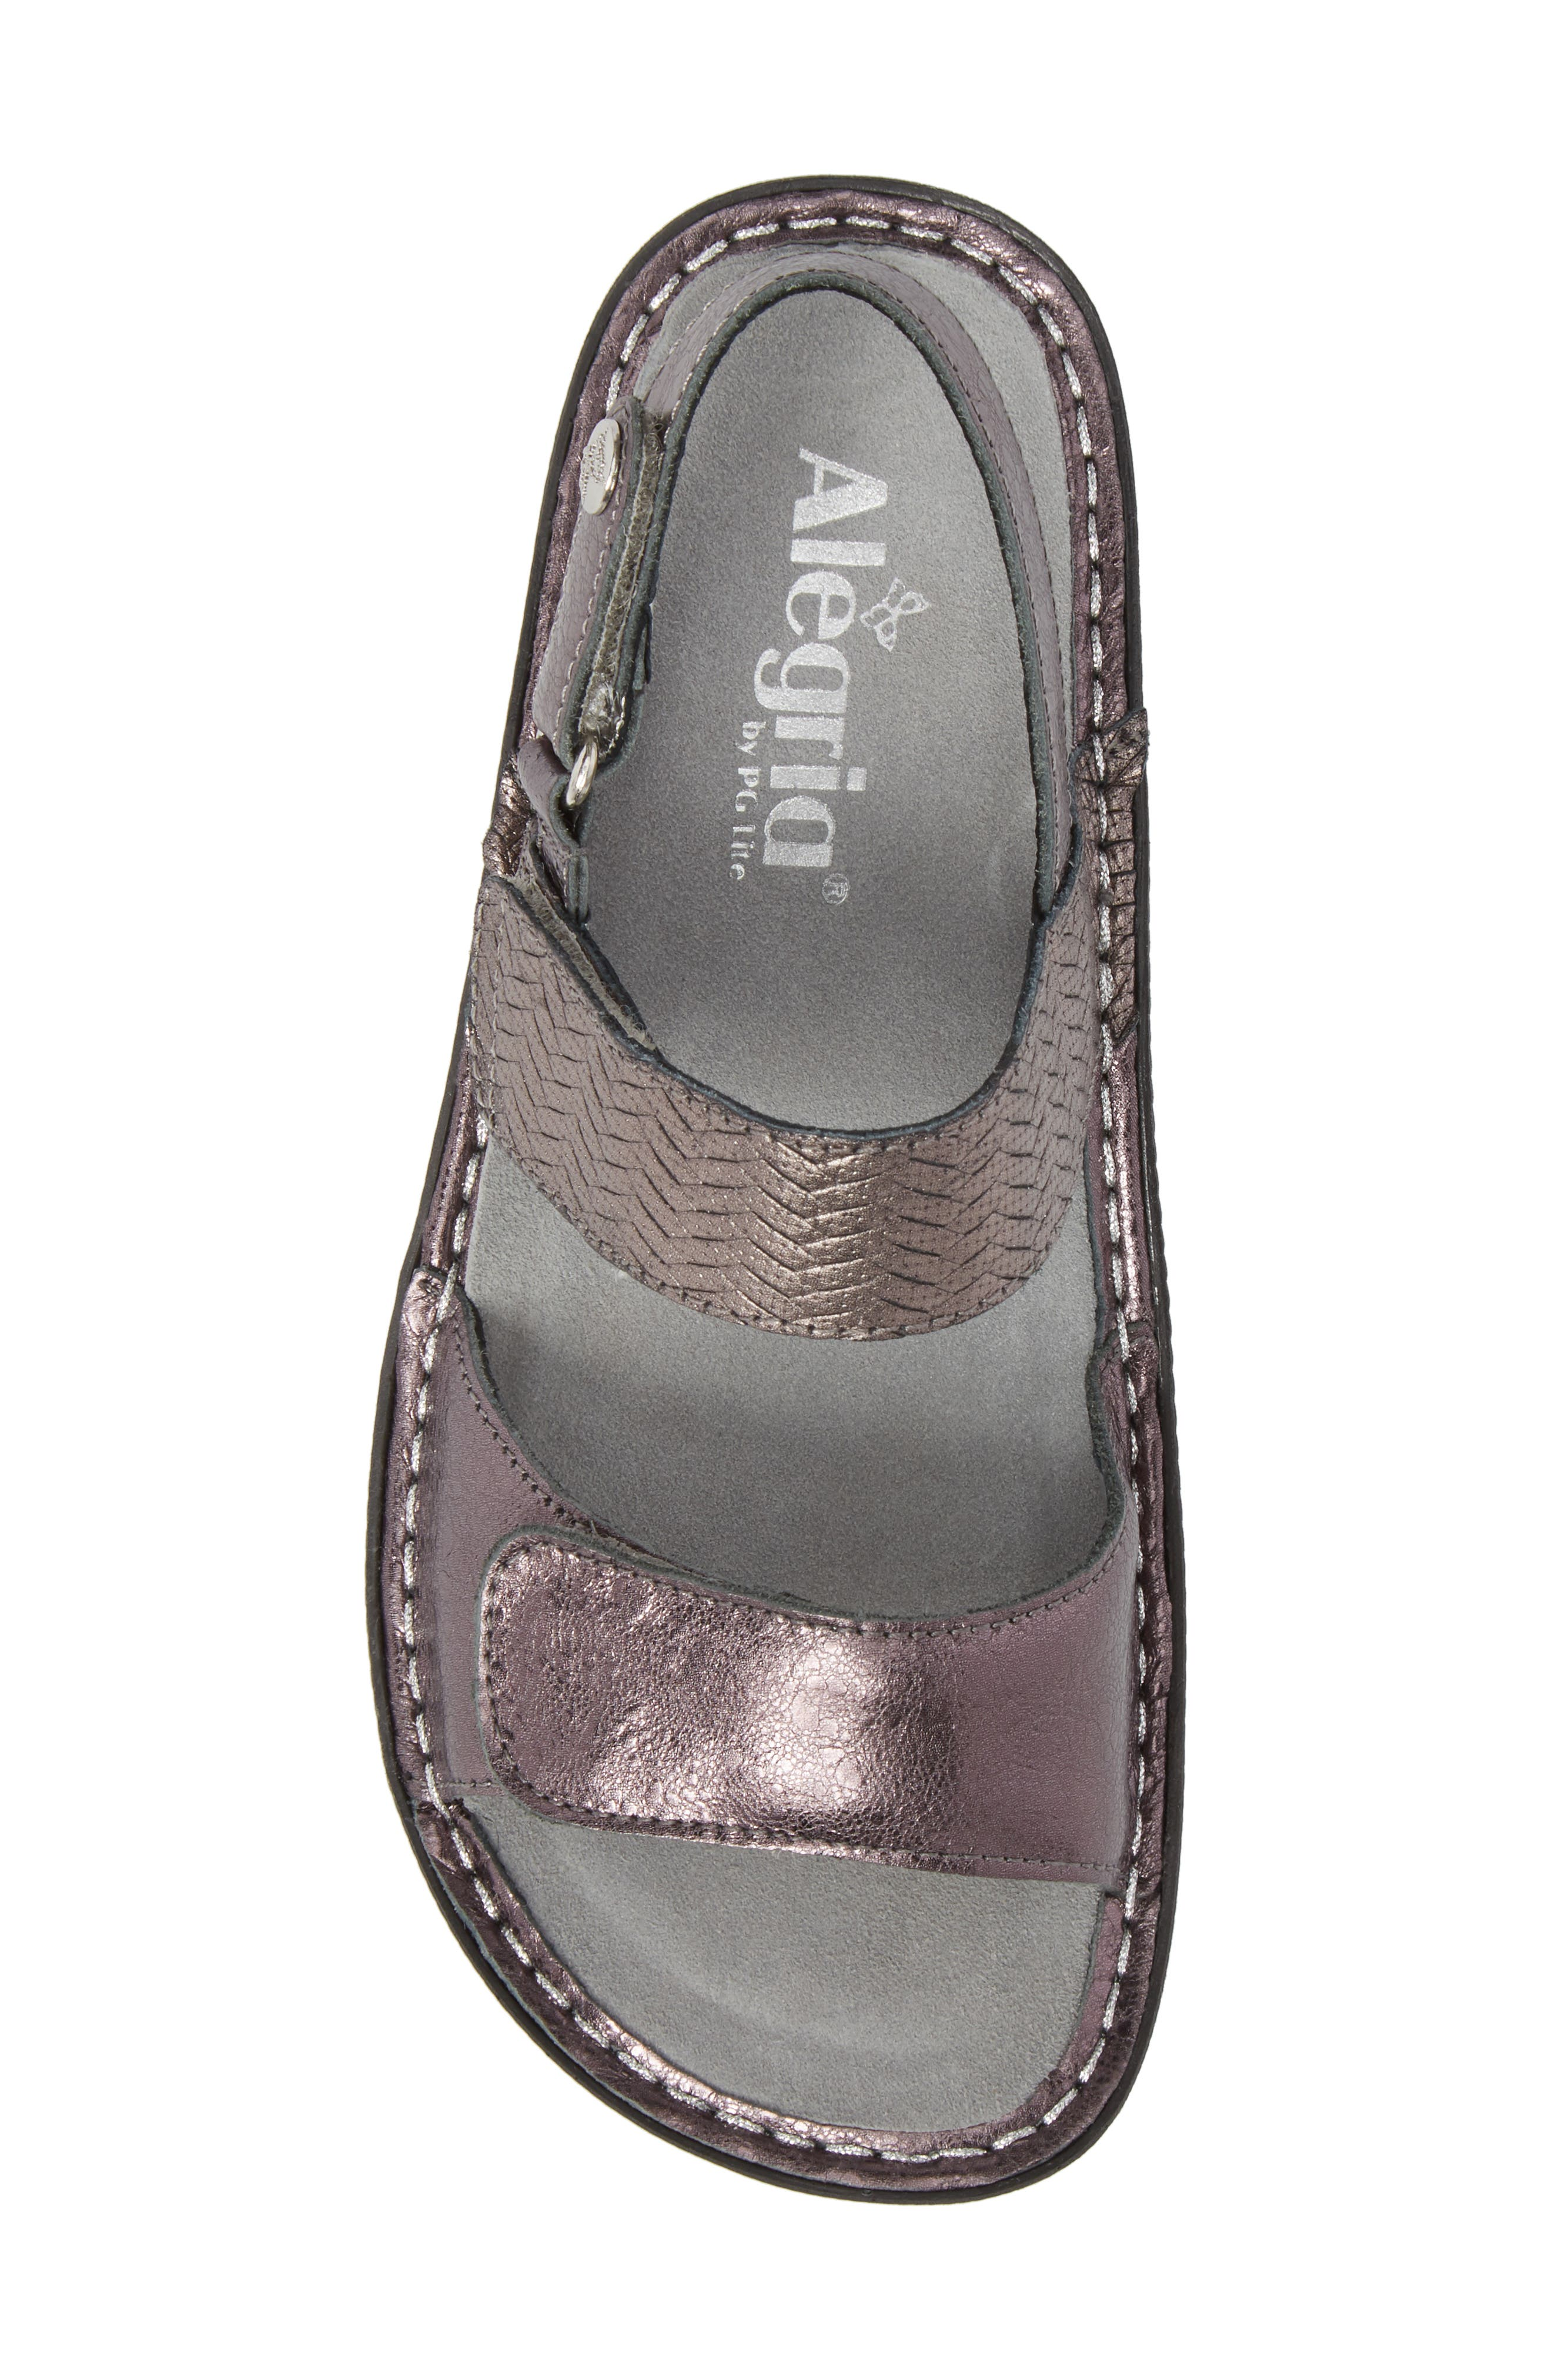 'Verona' Sandal,                             Alternate thumbnail 5, color,                             Braided Pewter Leather